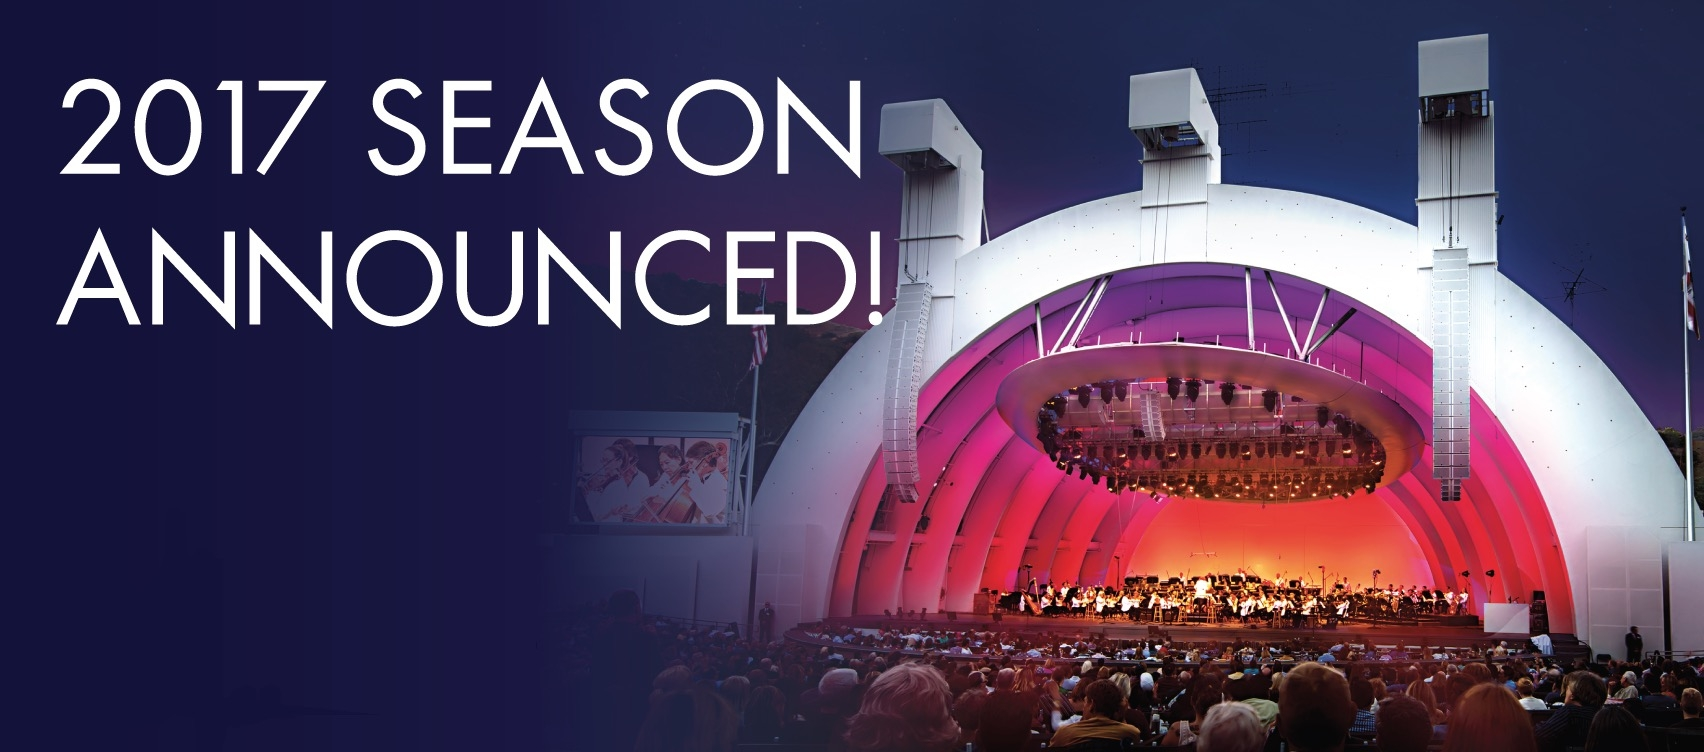 Hollywoodbowl 2017 season